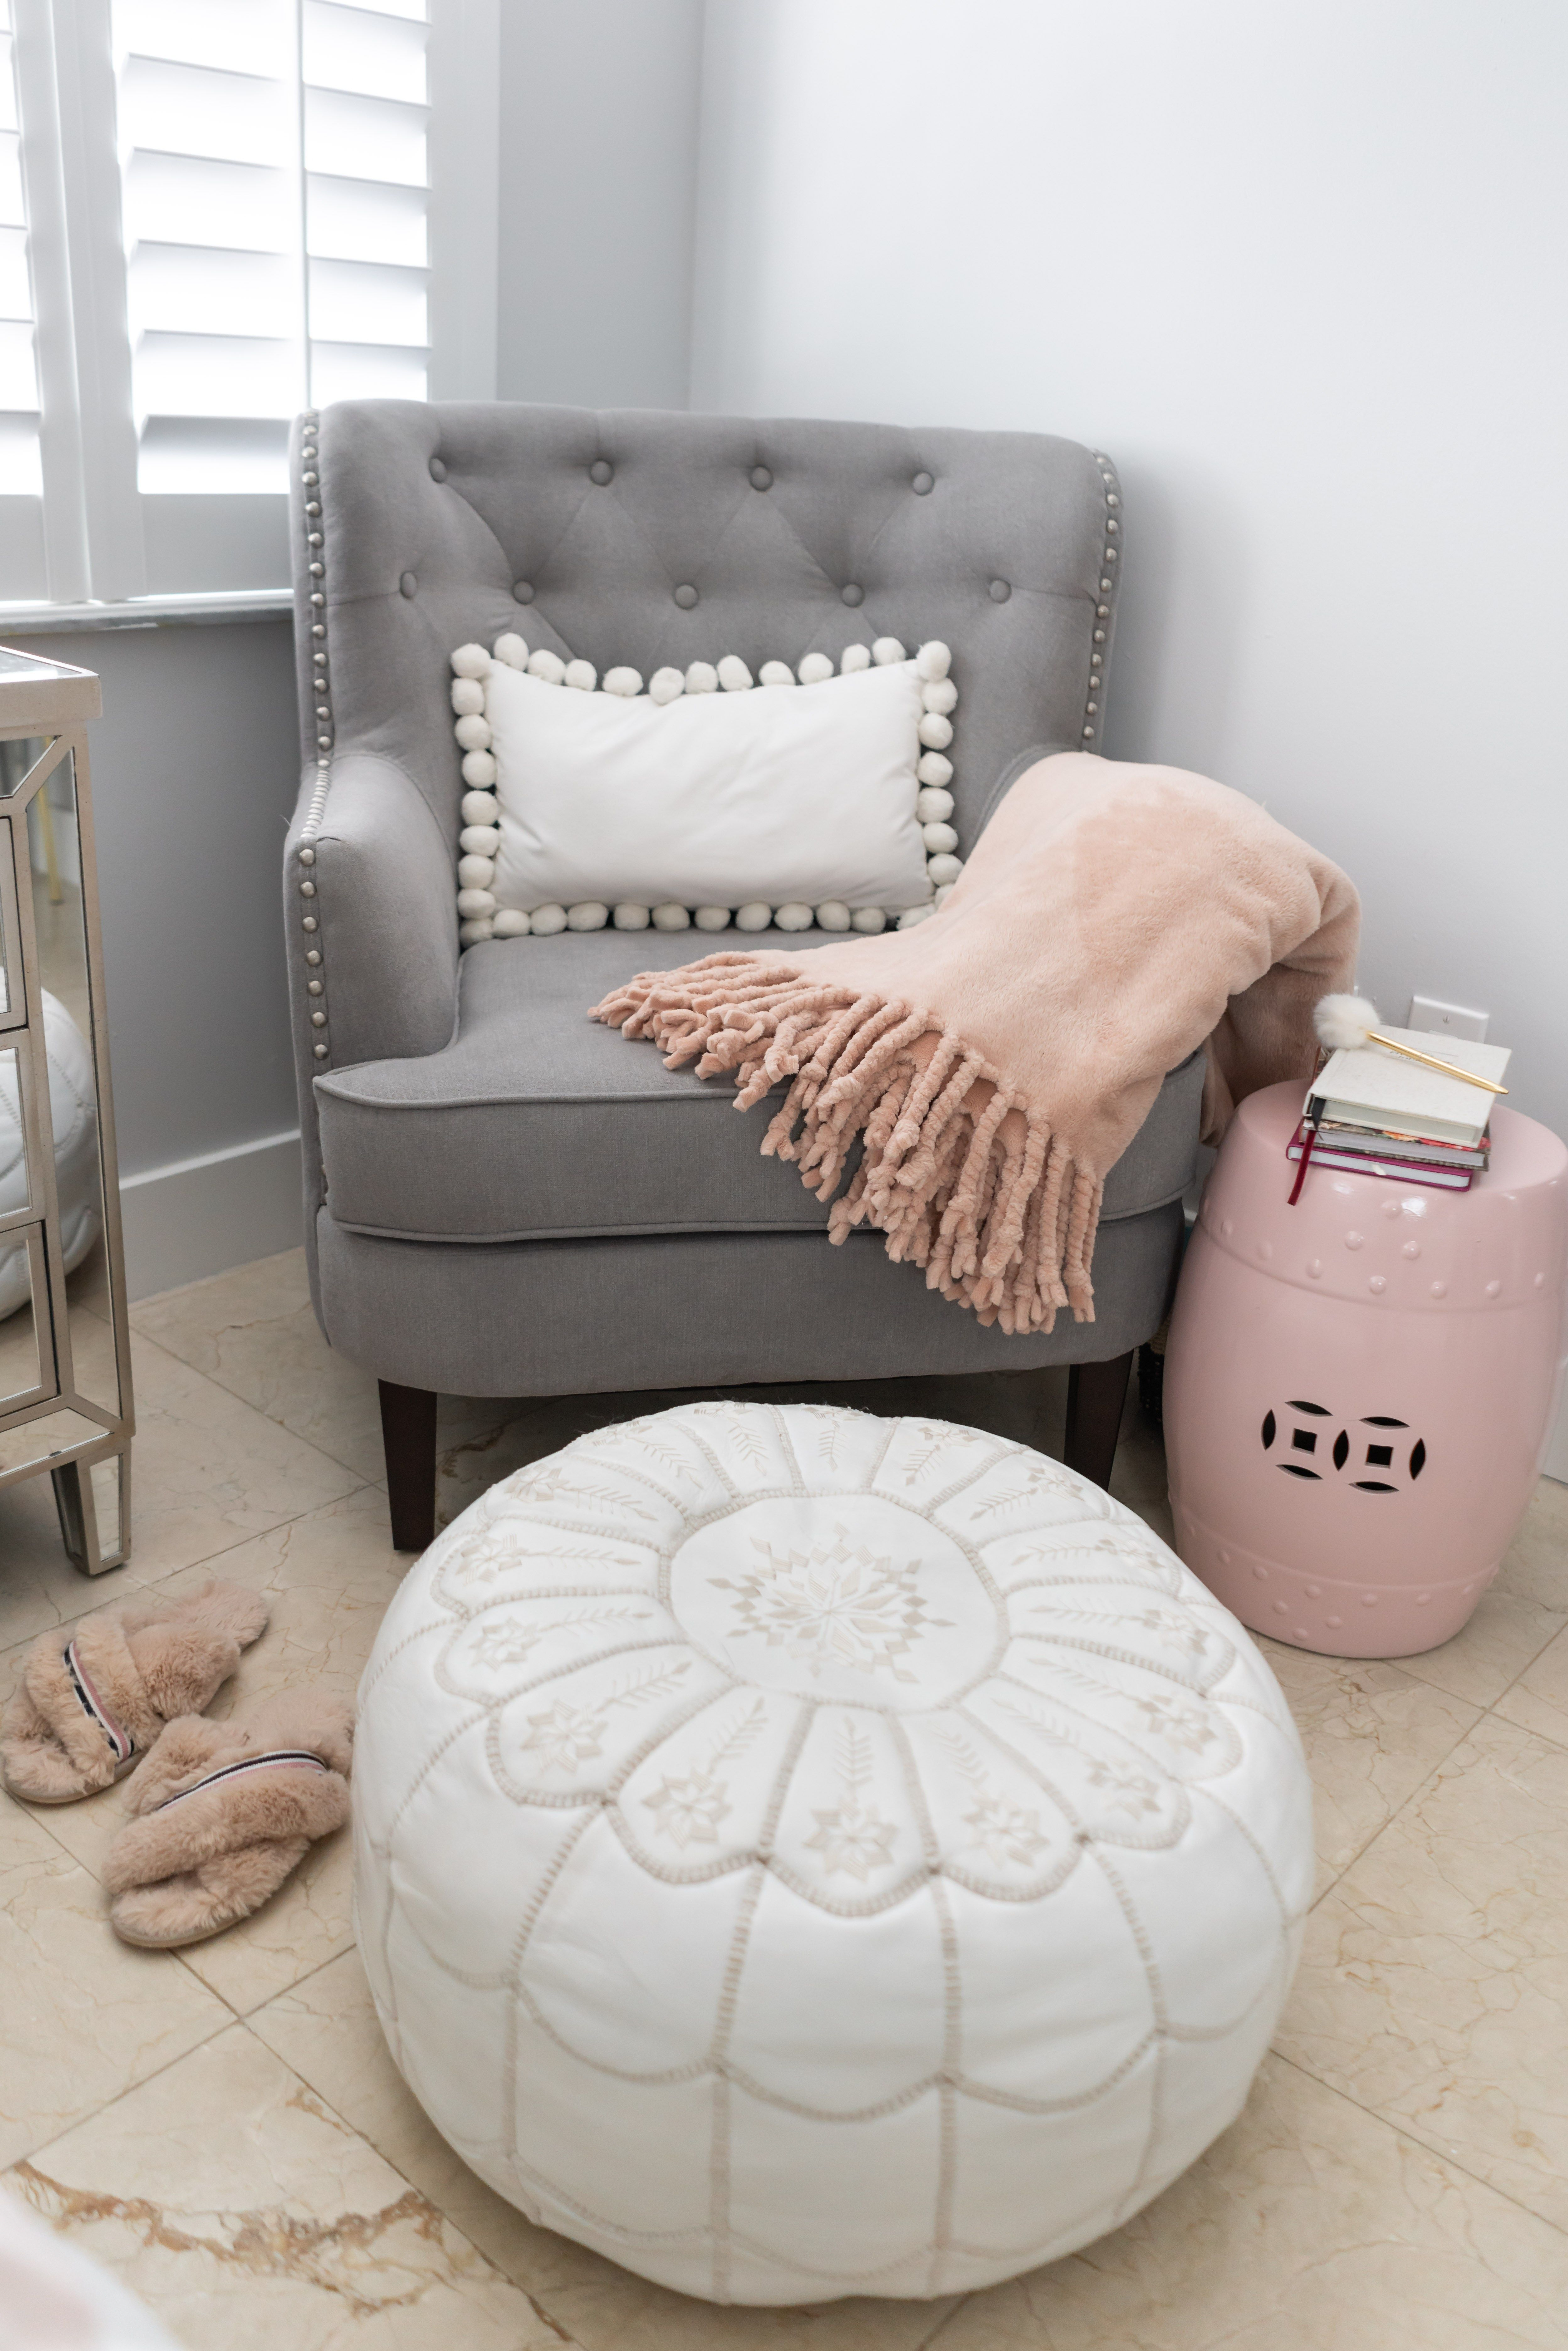 How To Make Your Bedroom Cozy (My 12 Tips) - The Fancy Things